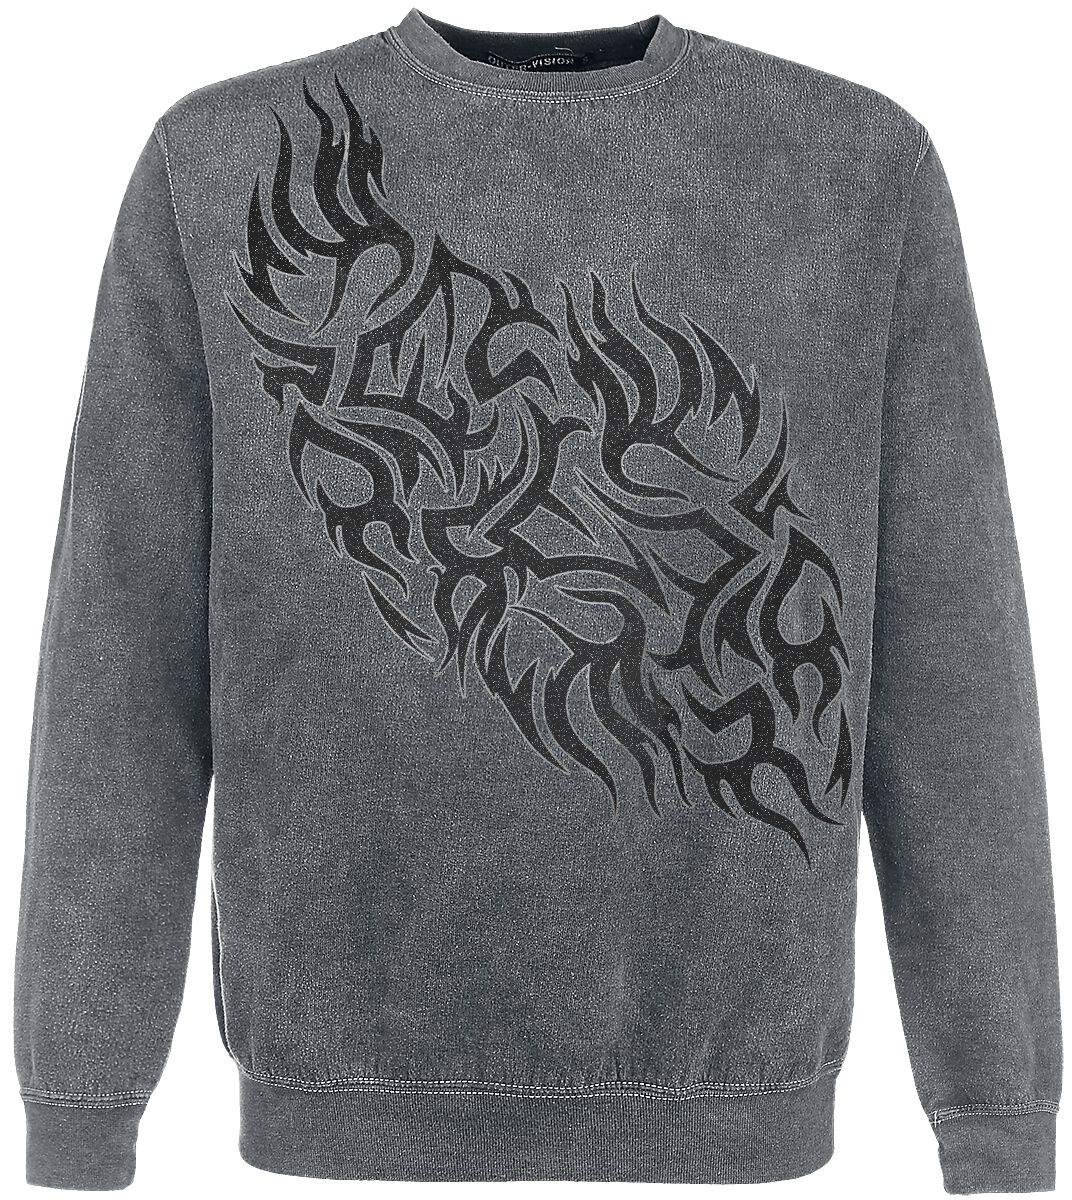 Image of   Outer Vision Flames Tattoo Sweatshirt grå